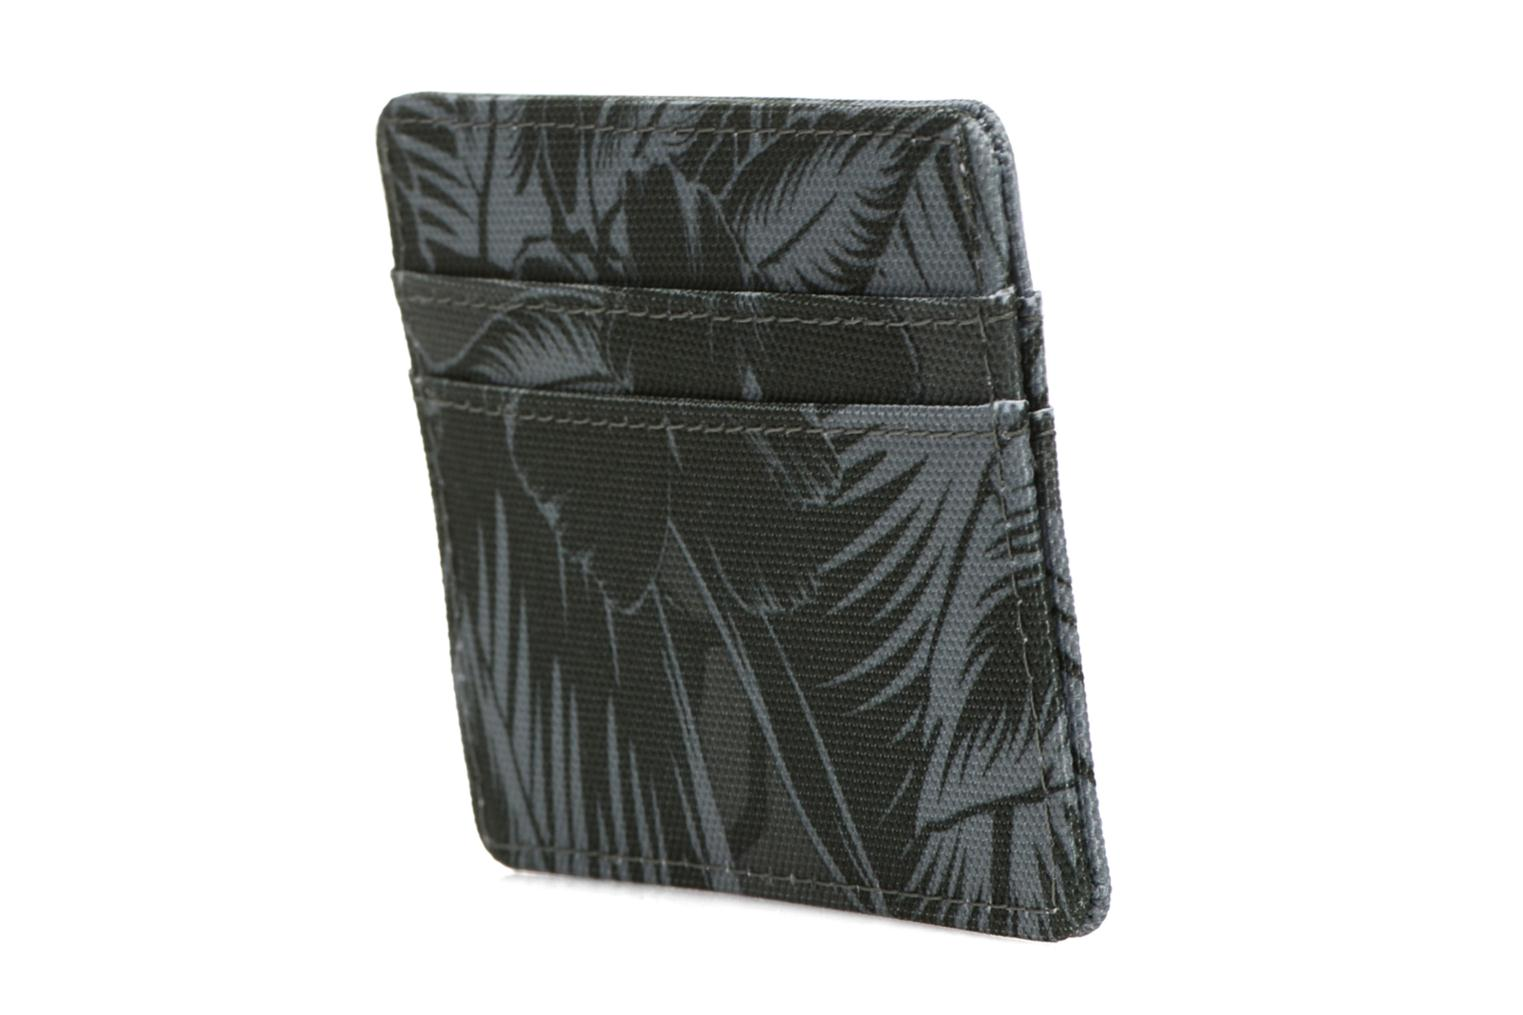 CHARLIE Porte-cartes Jungle Floral Green